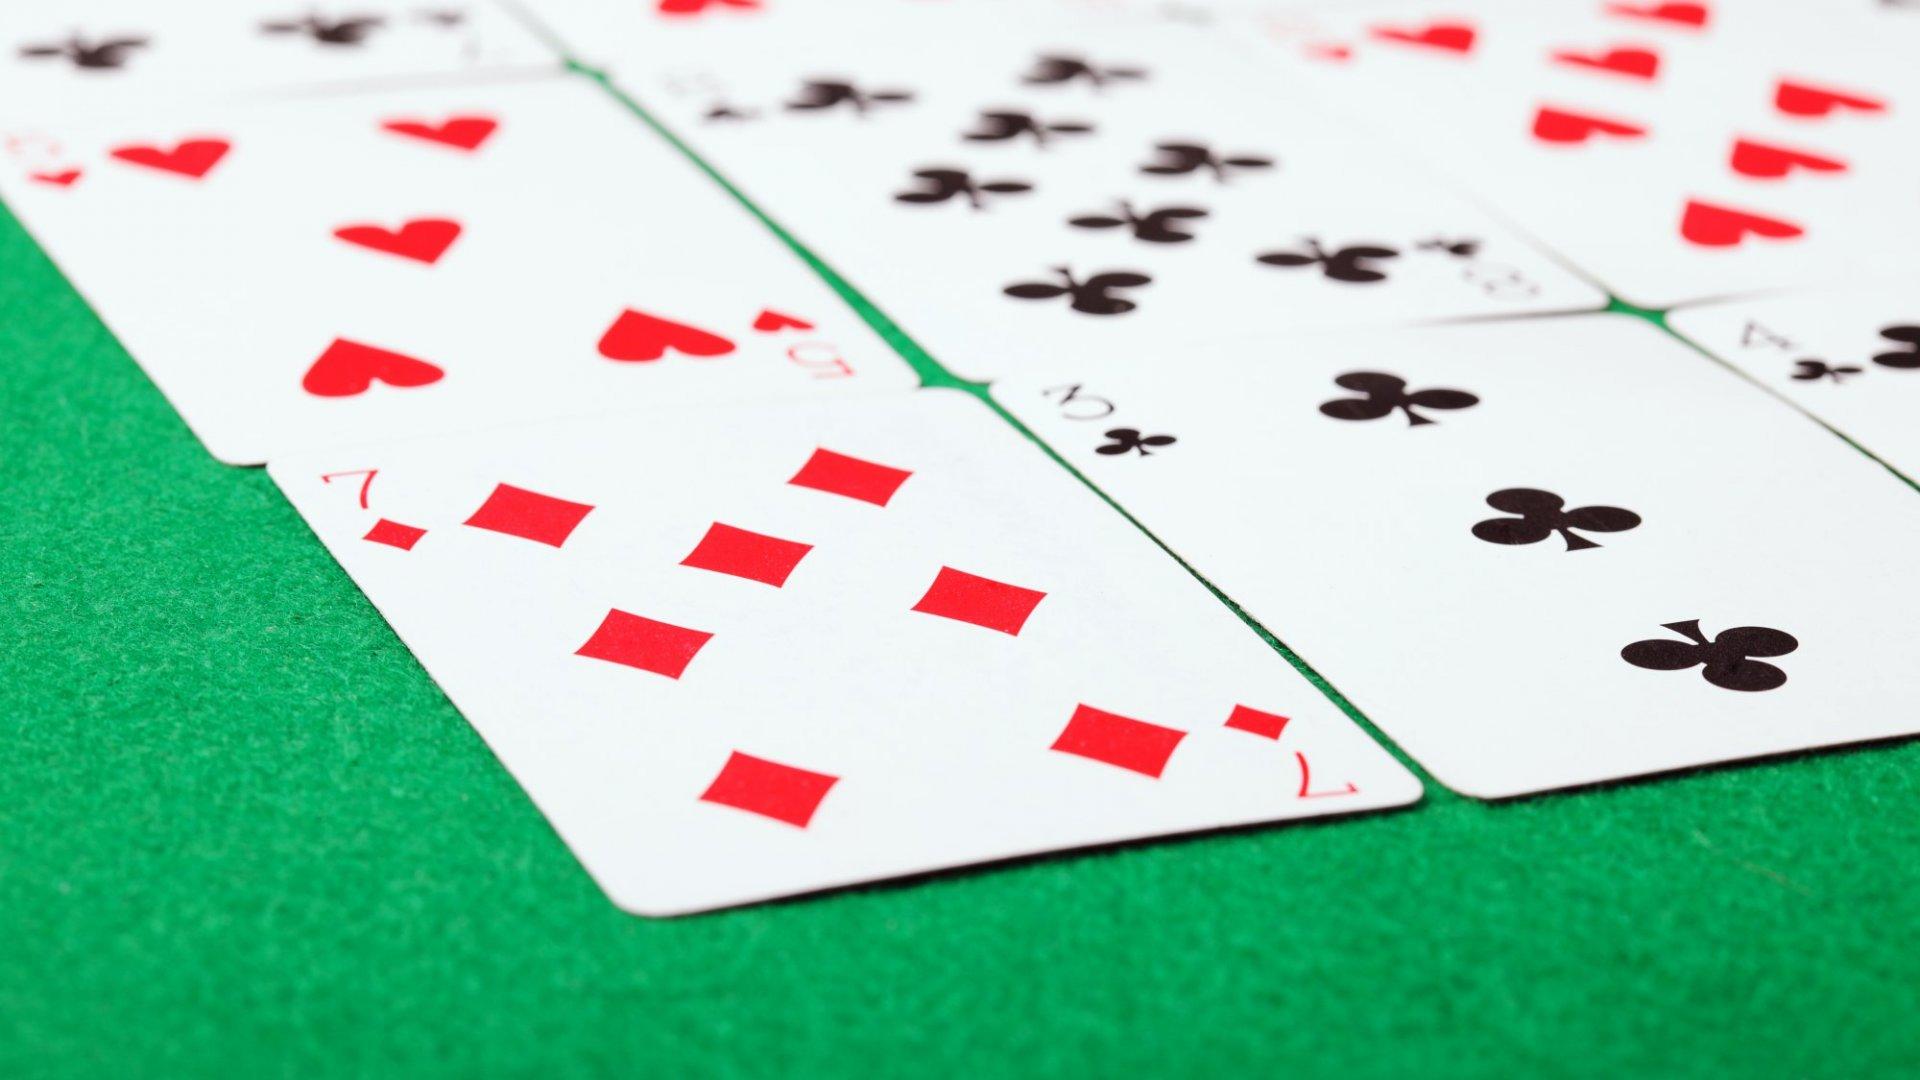 Microsoft Solitaire Is Finally 'Hall of Fame' Status and It's Far More Important Than Anyone Realizes